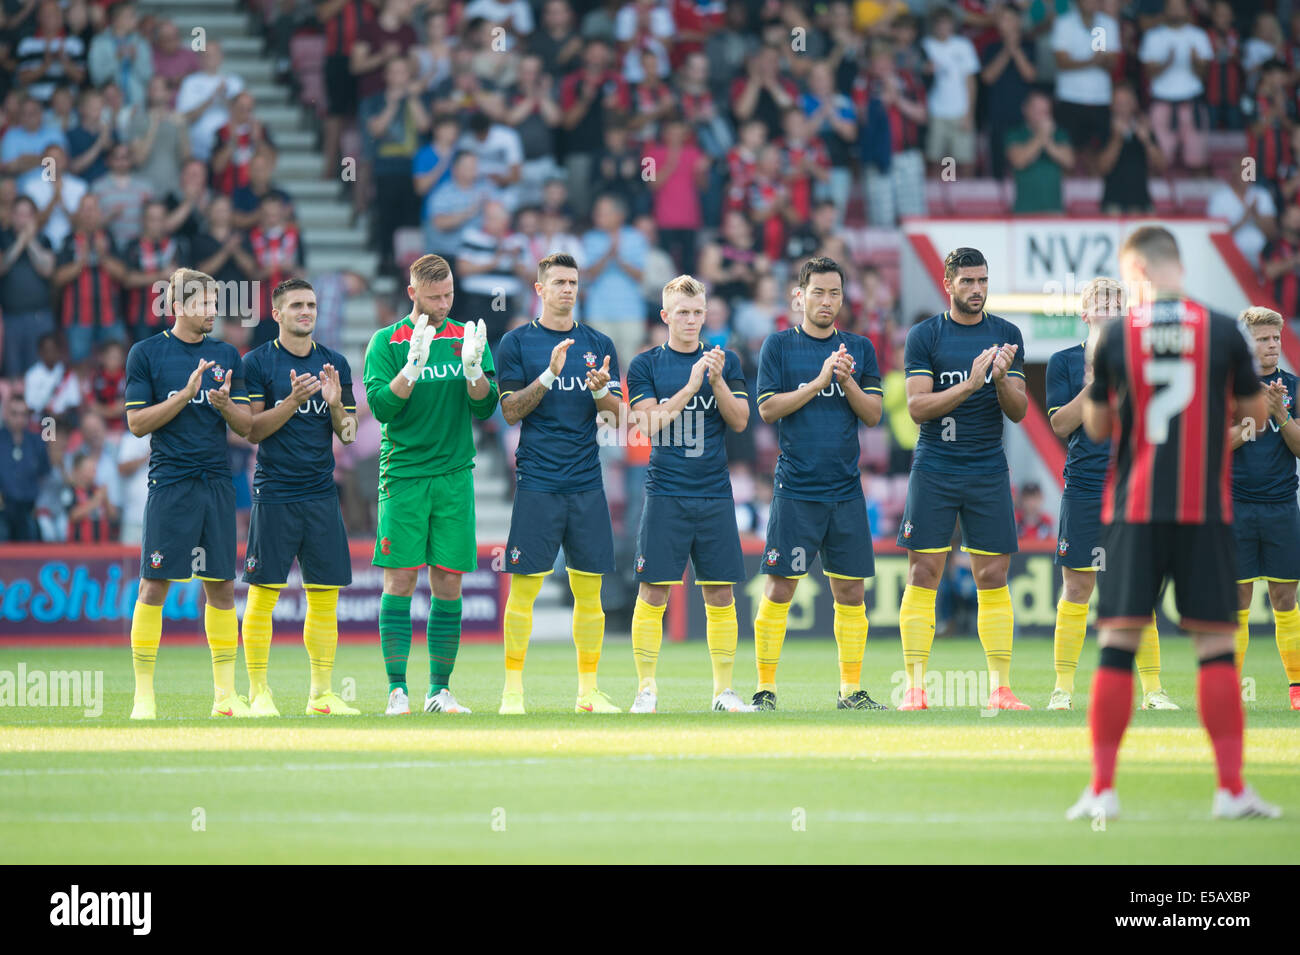 Bournemouth, Dorset, UK. 25th July, 2014. Pre Season Friendly. AFC Bournemouth versus Southampton. Southampton players - Stock Image